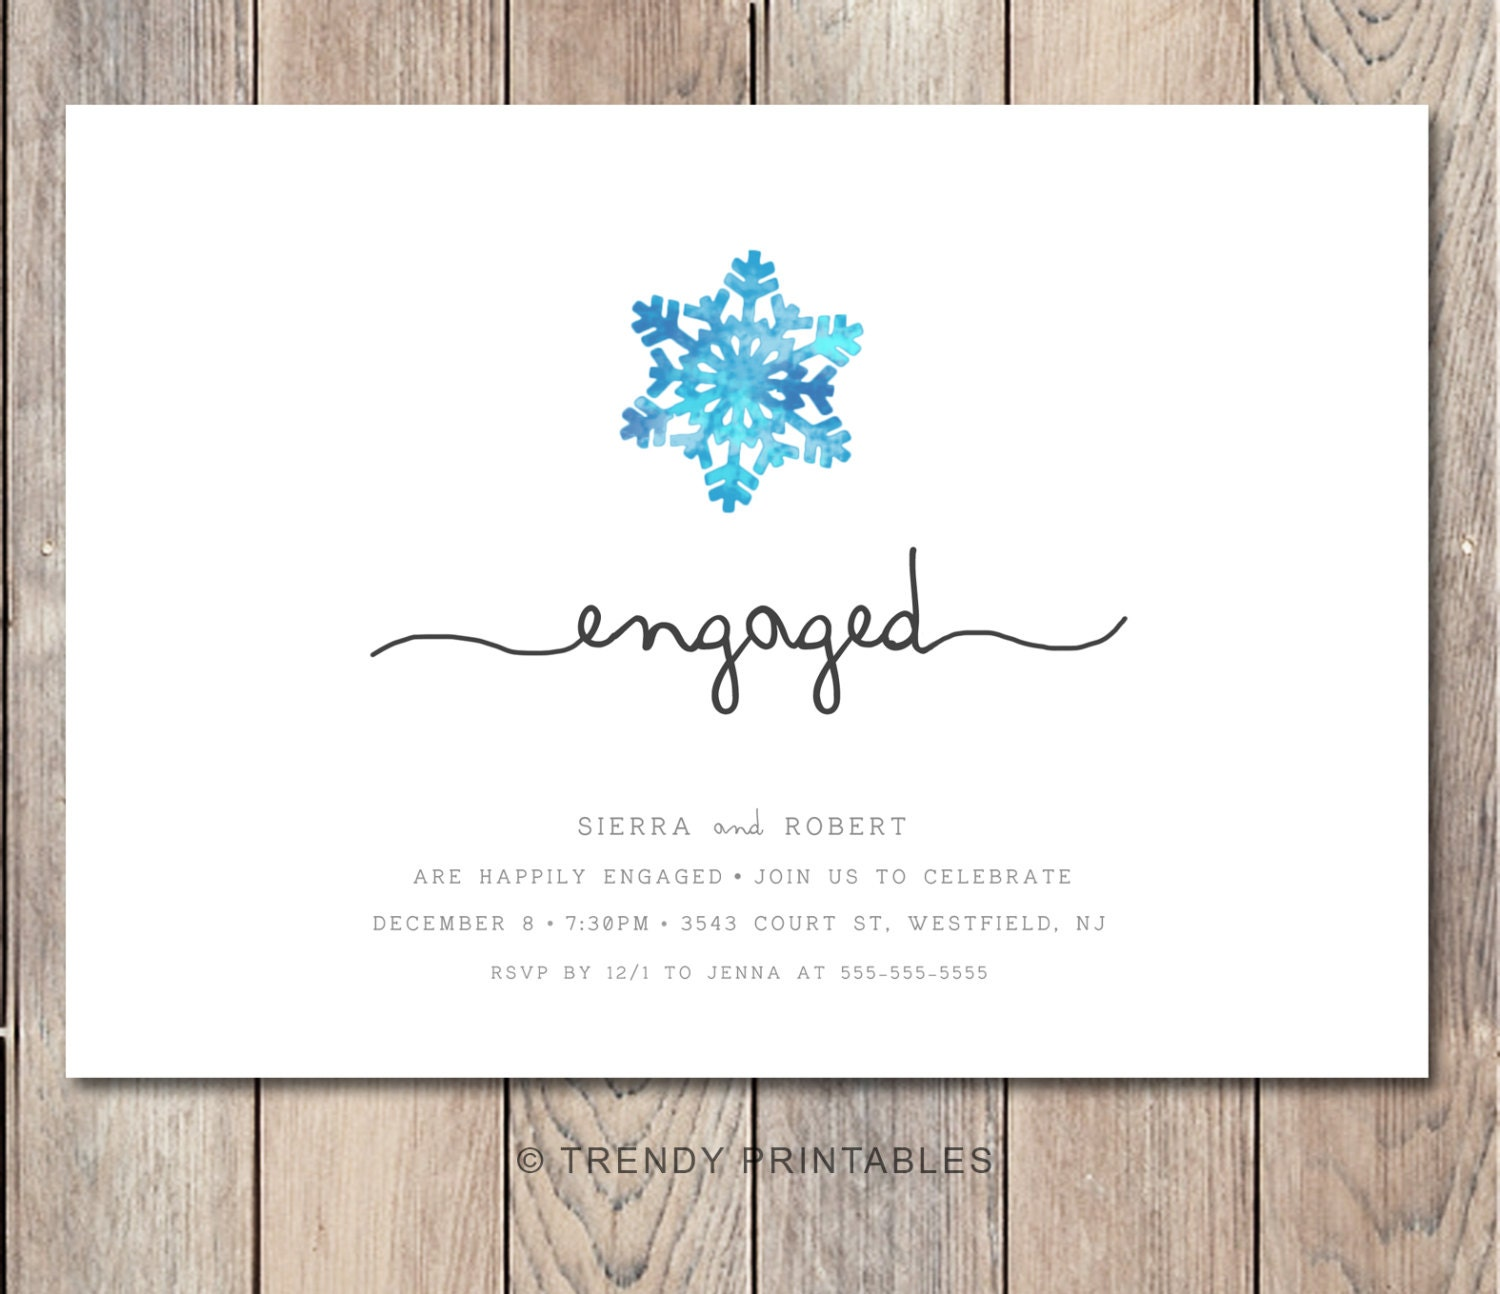 Engagement Party Invitation Christmas Engagement Party – How to Word Engagement Party Invitations